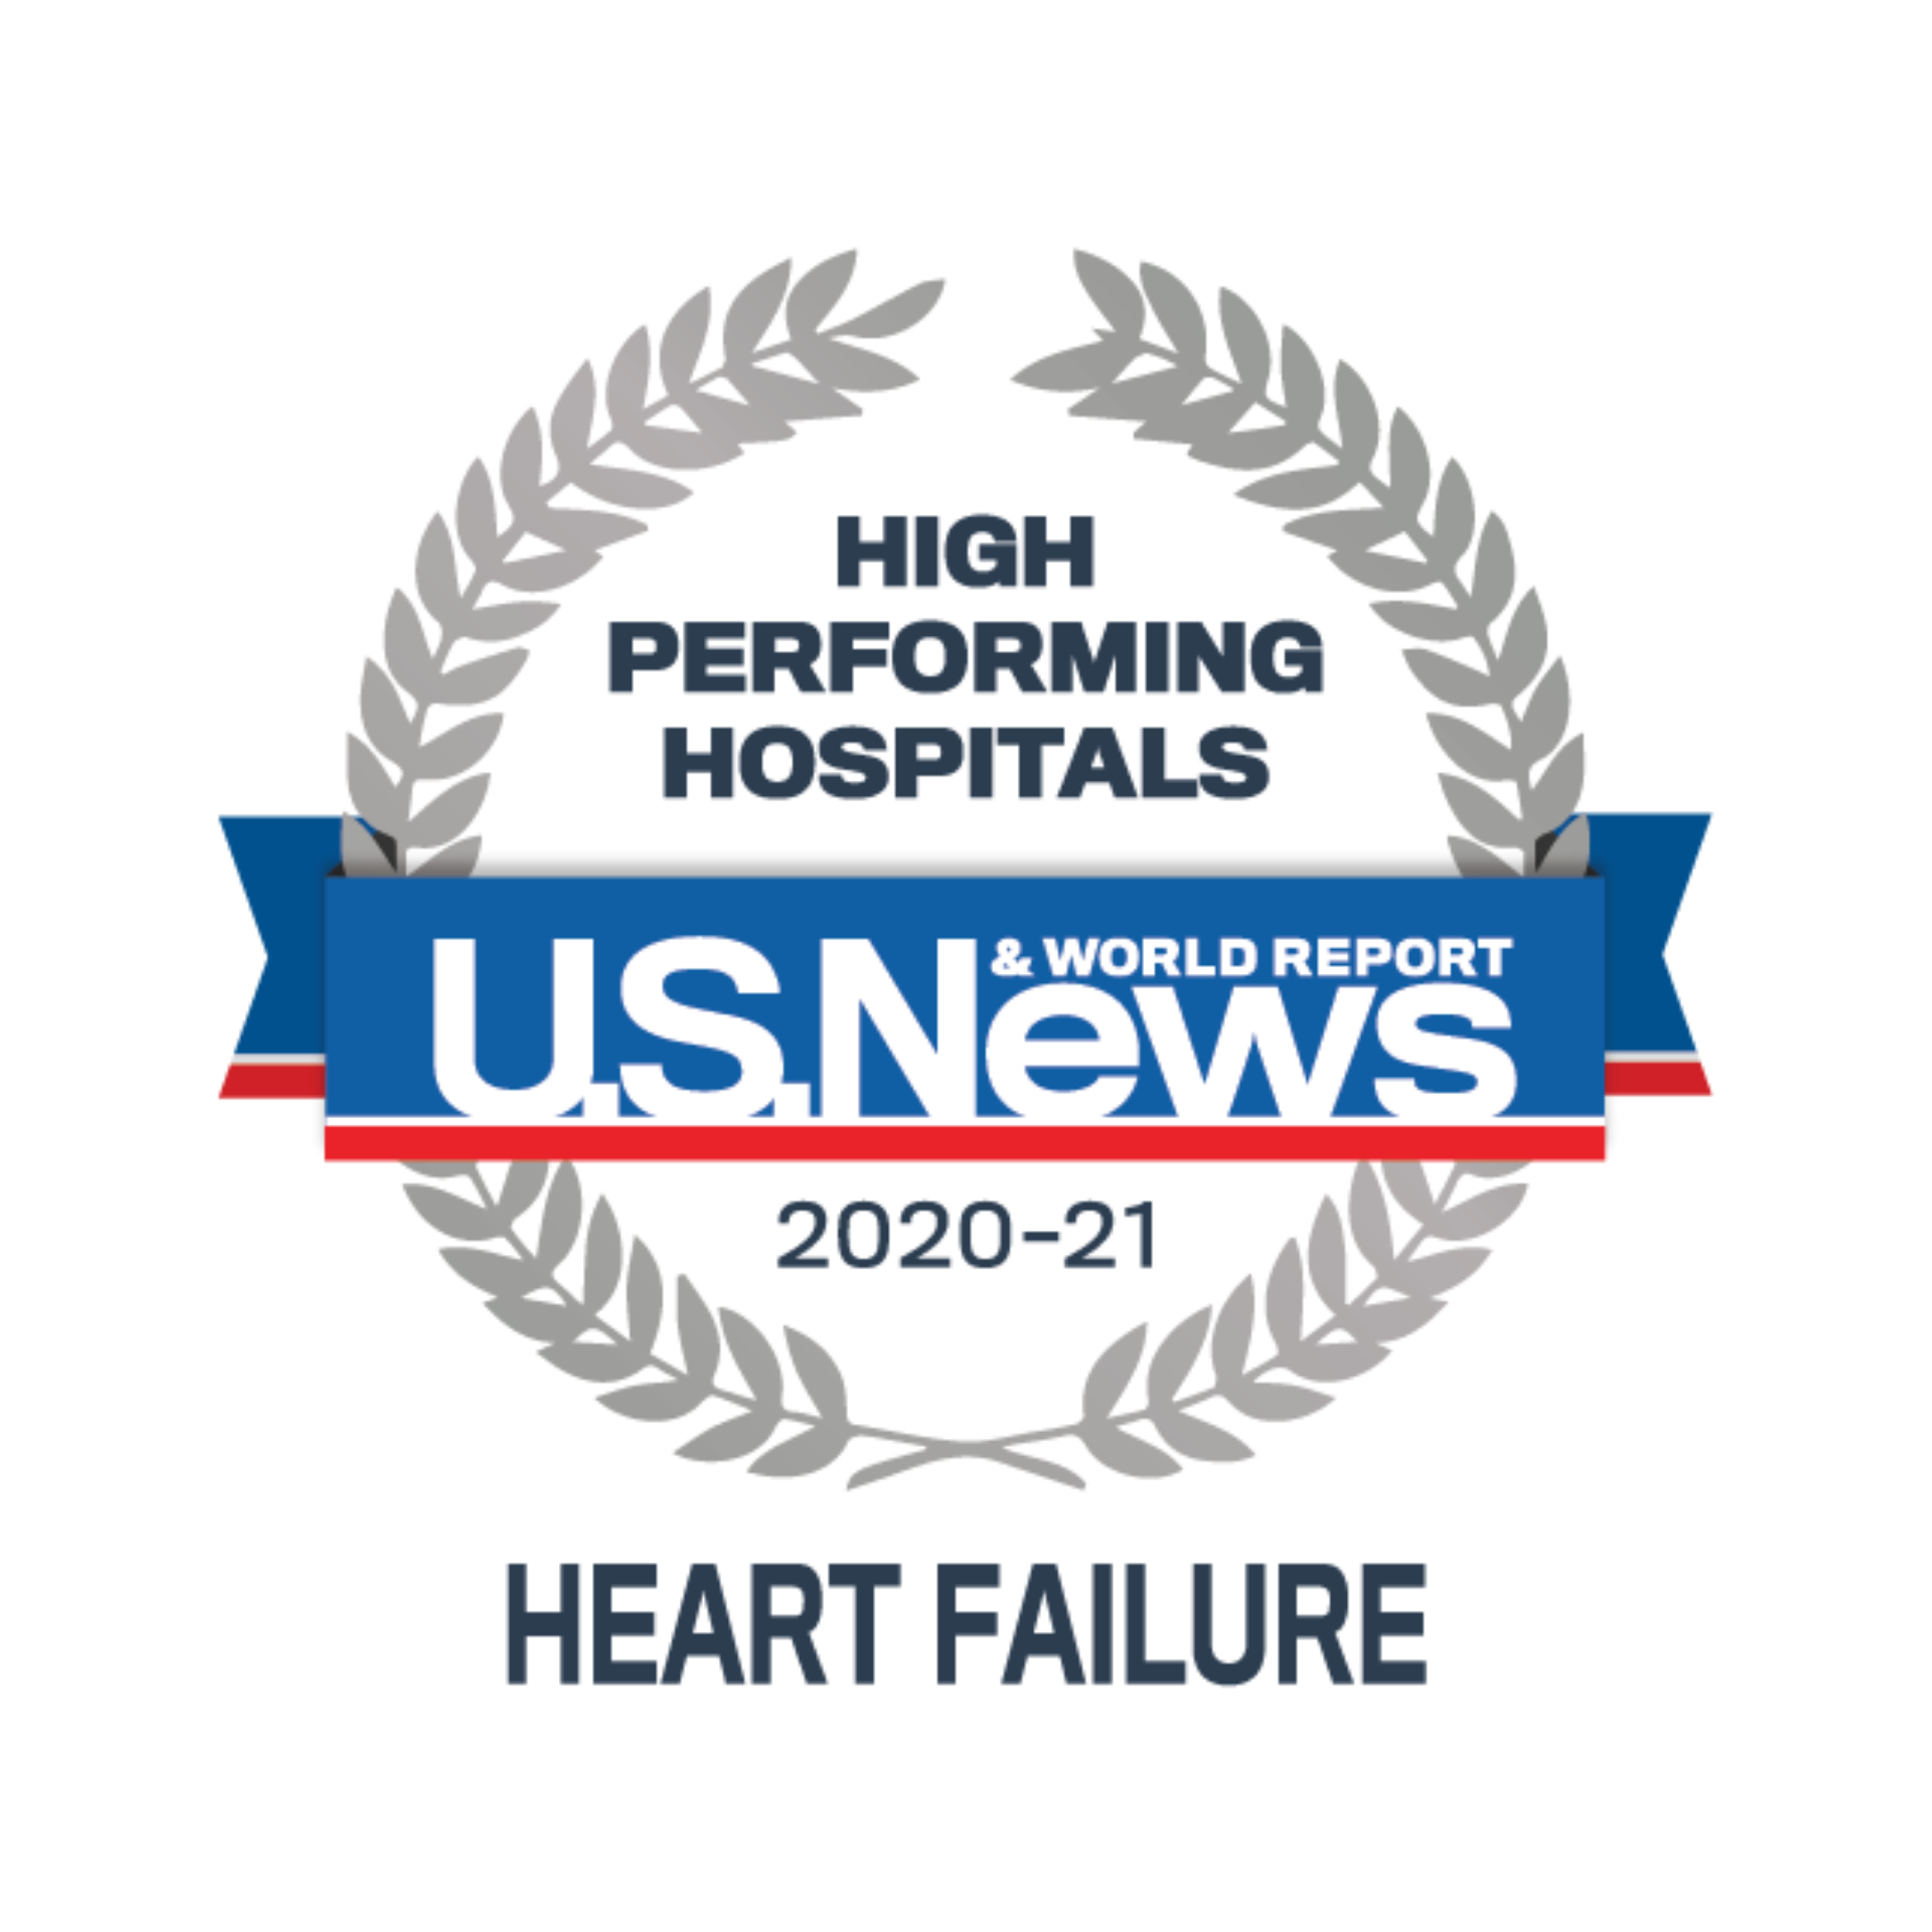 US News and World Report for Heart Failure